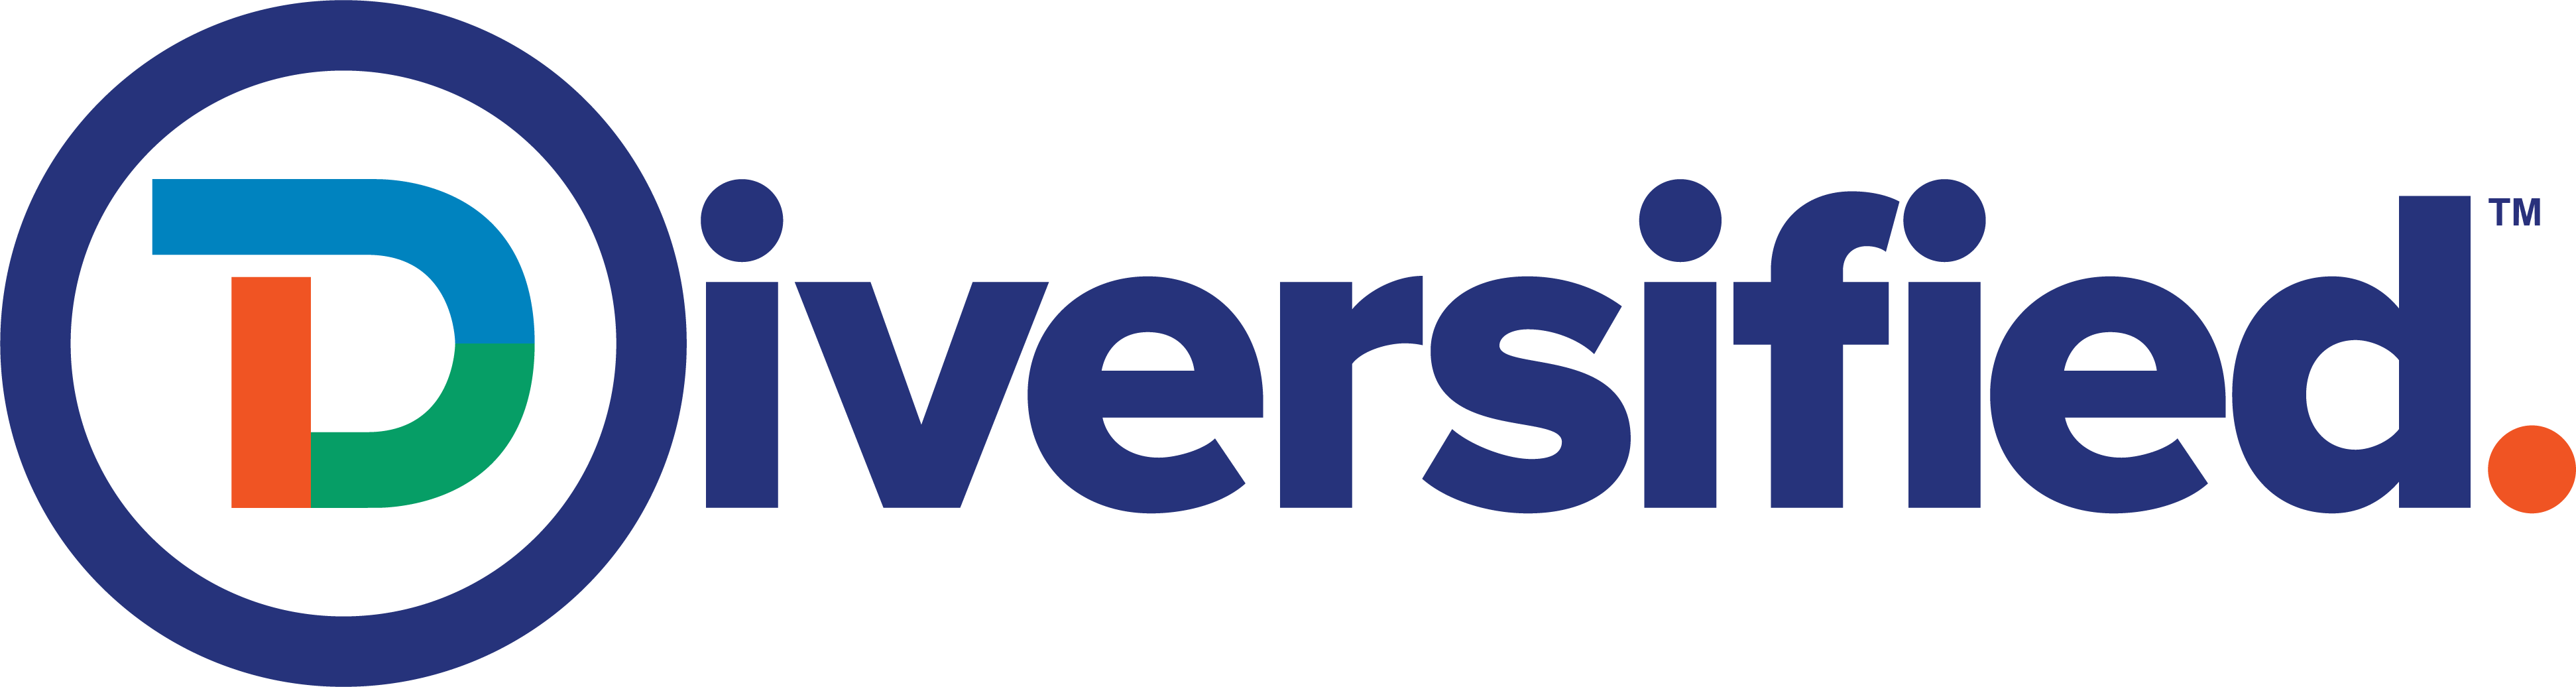 DIVERSIFIED_LOGO_POSITIVE.png